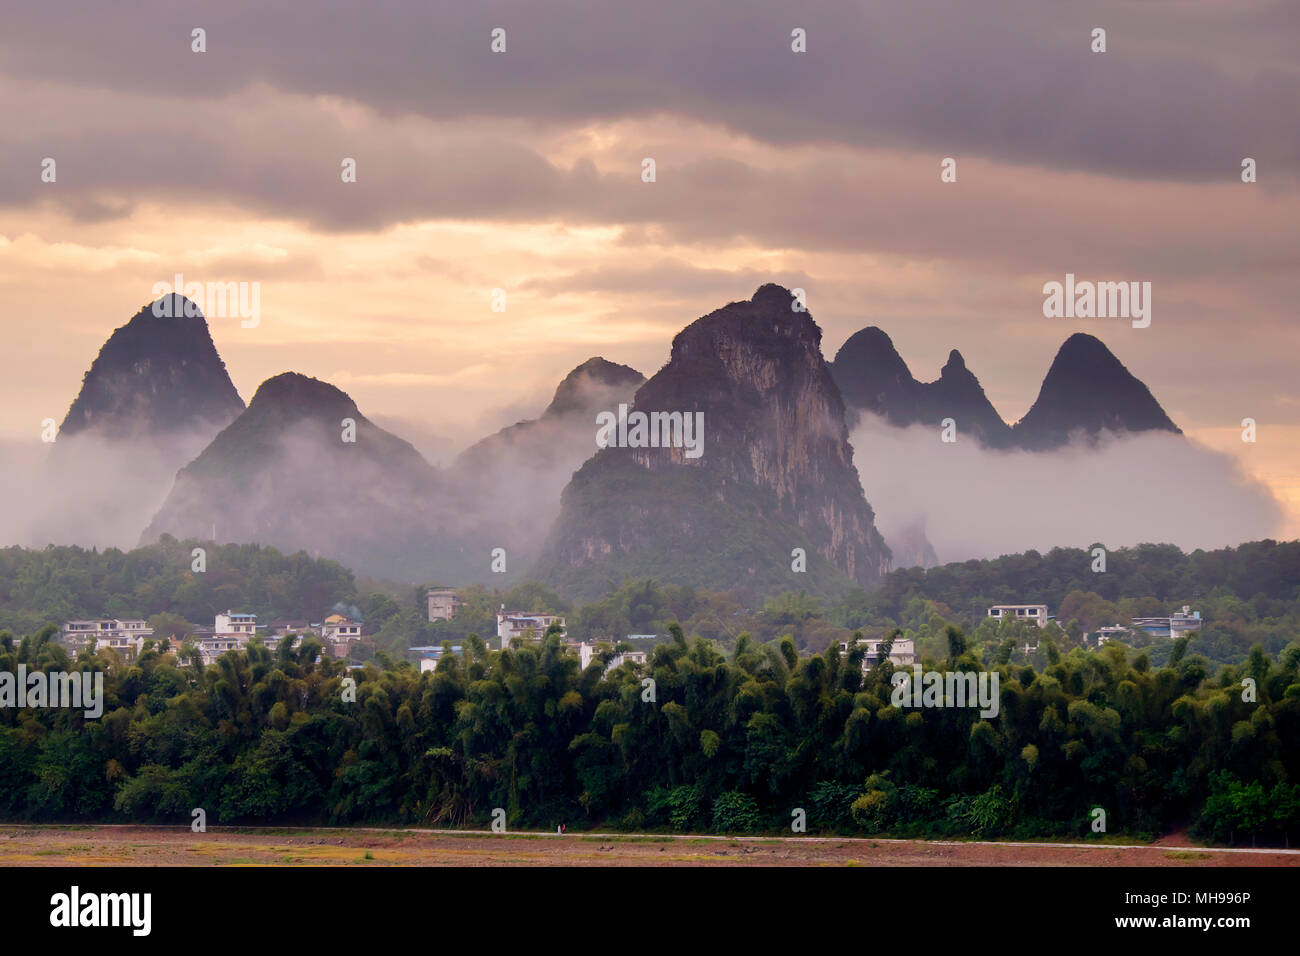 Karst mountains peaks, Yangshuo, Guangxi Province, China Stock Photo